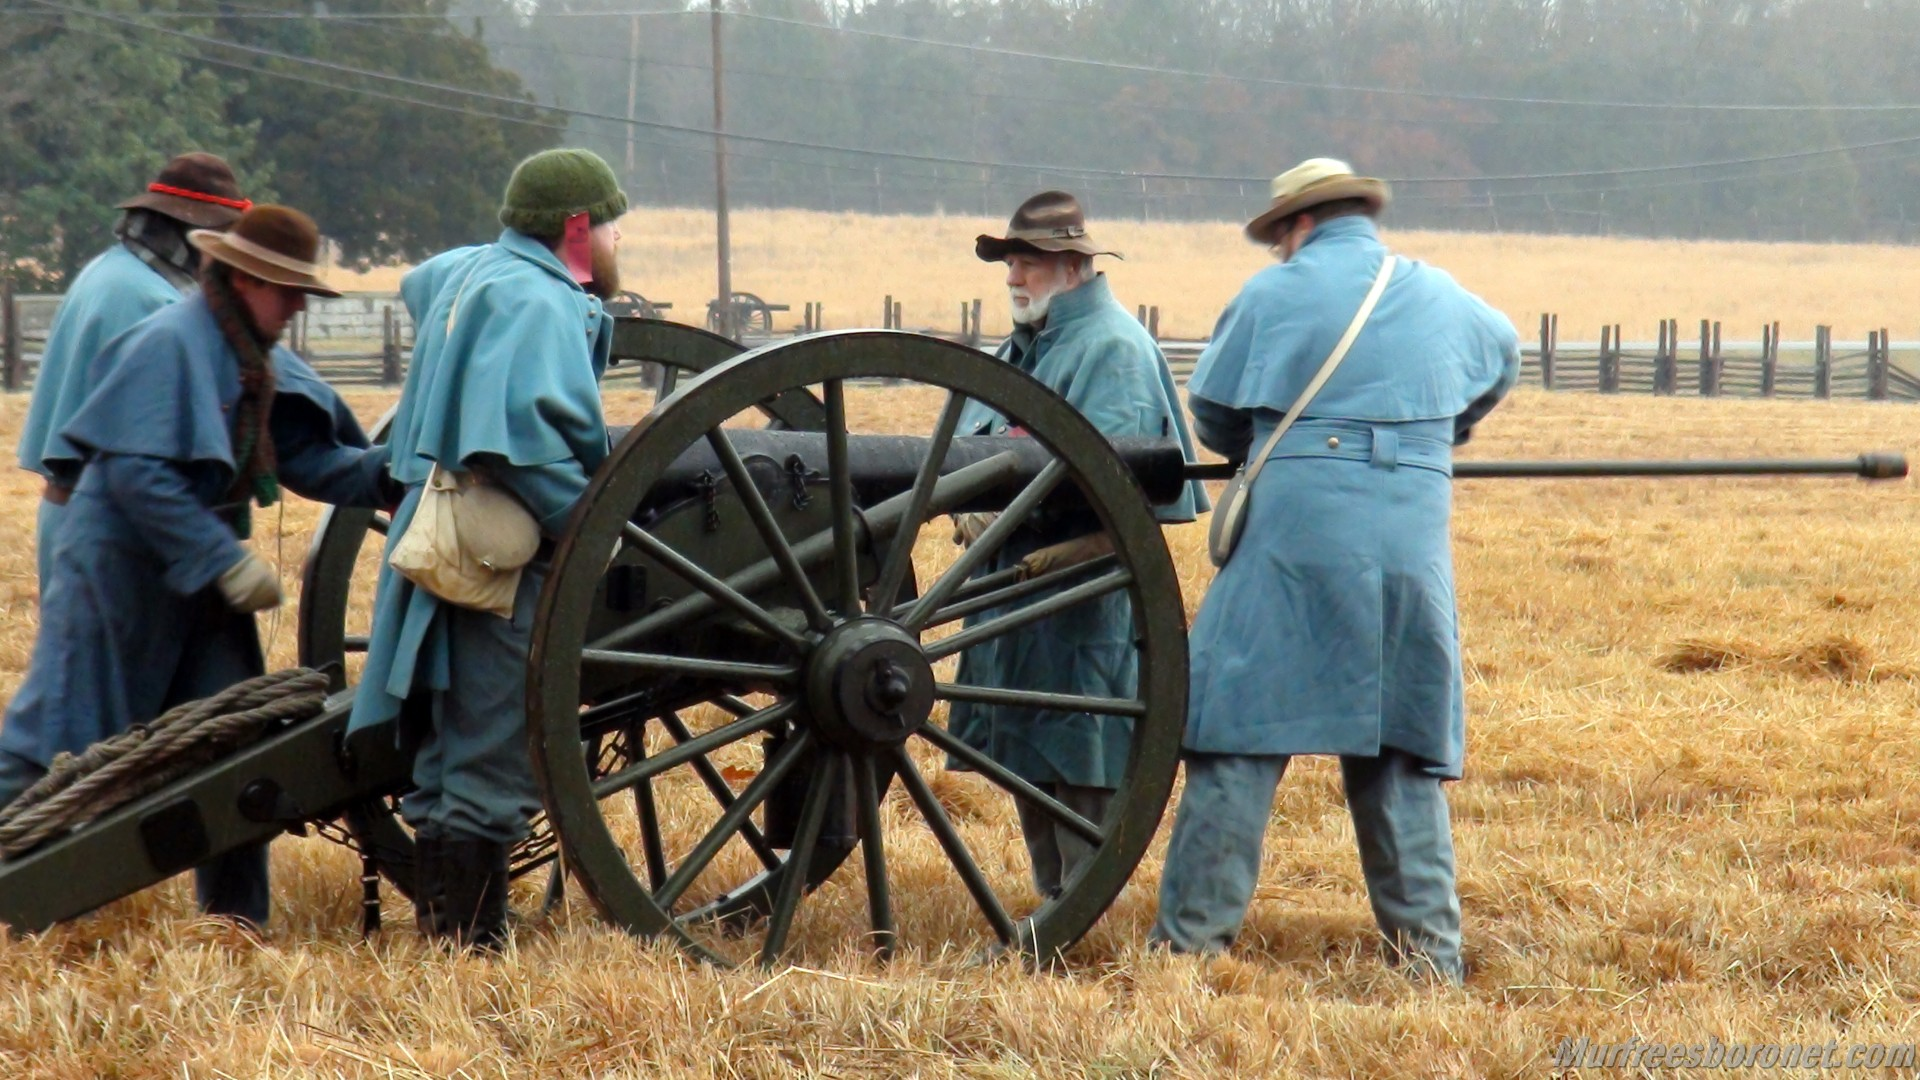 Prepping Cannons Battle of Stones River Images